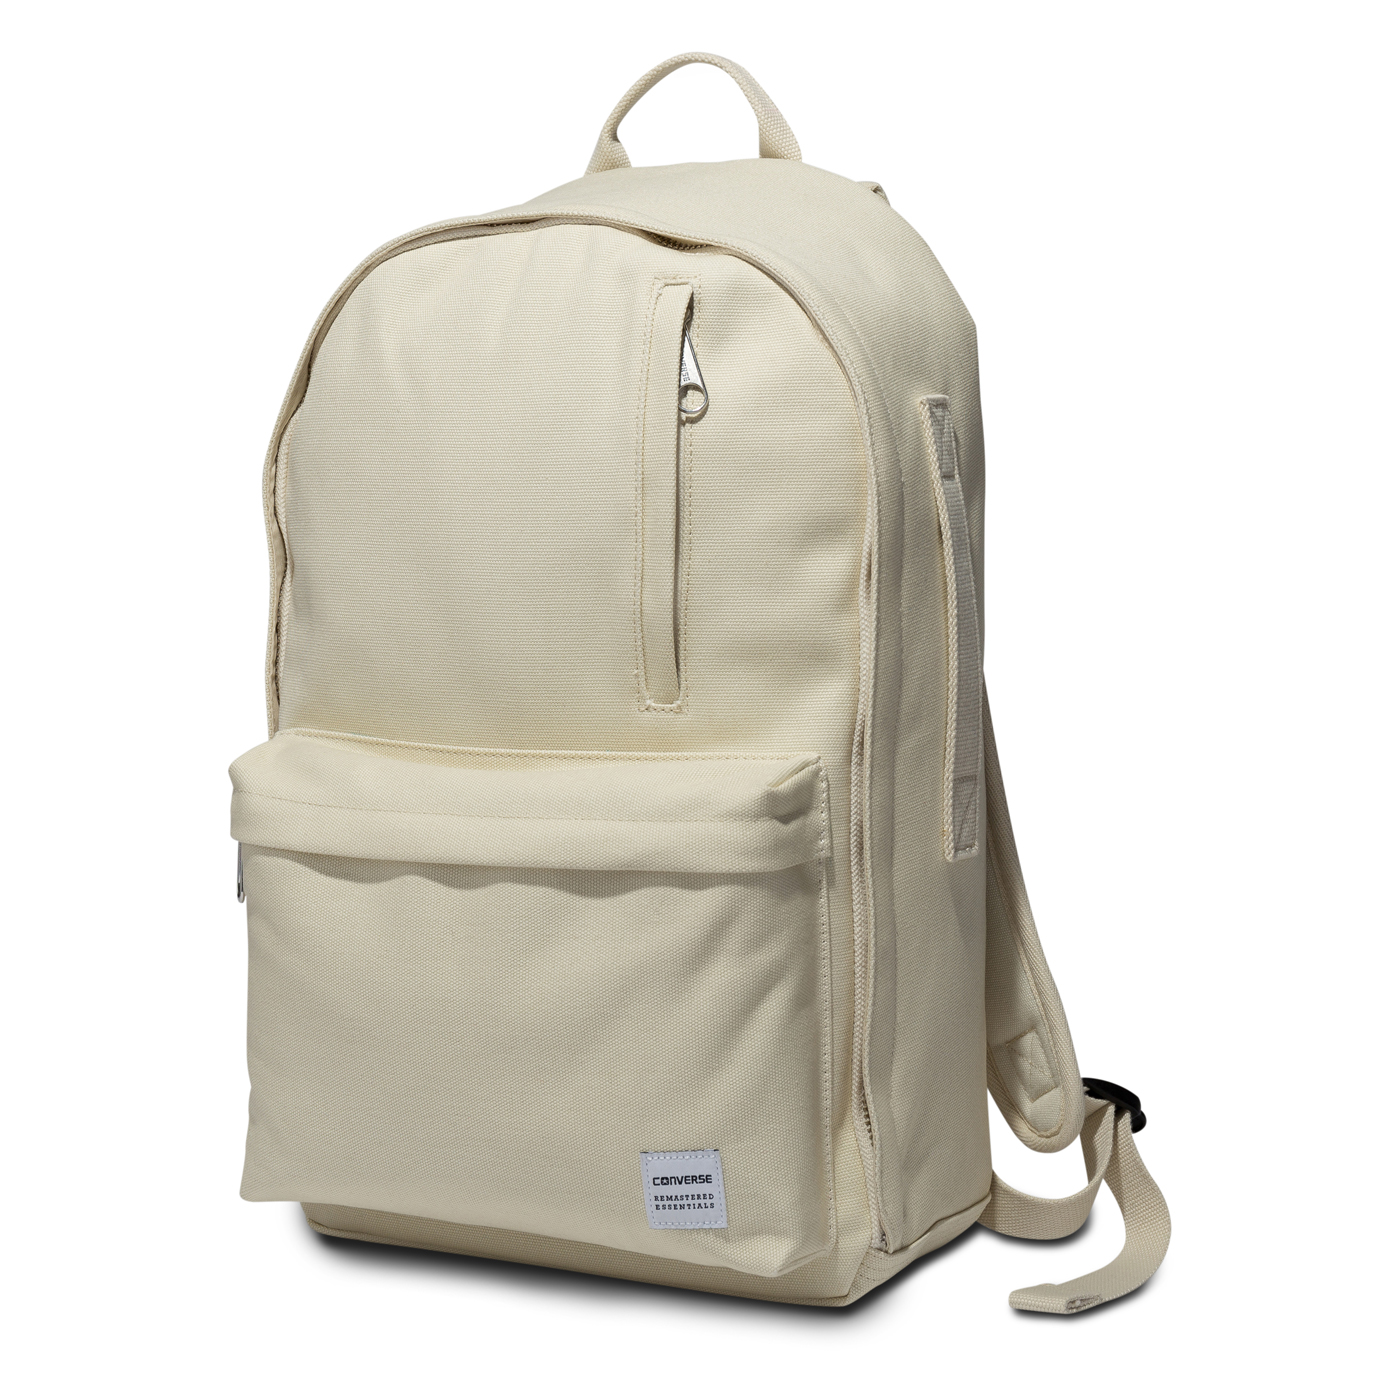 Converse_Essentail Backpack_10001399-A04_329 pln